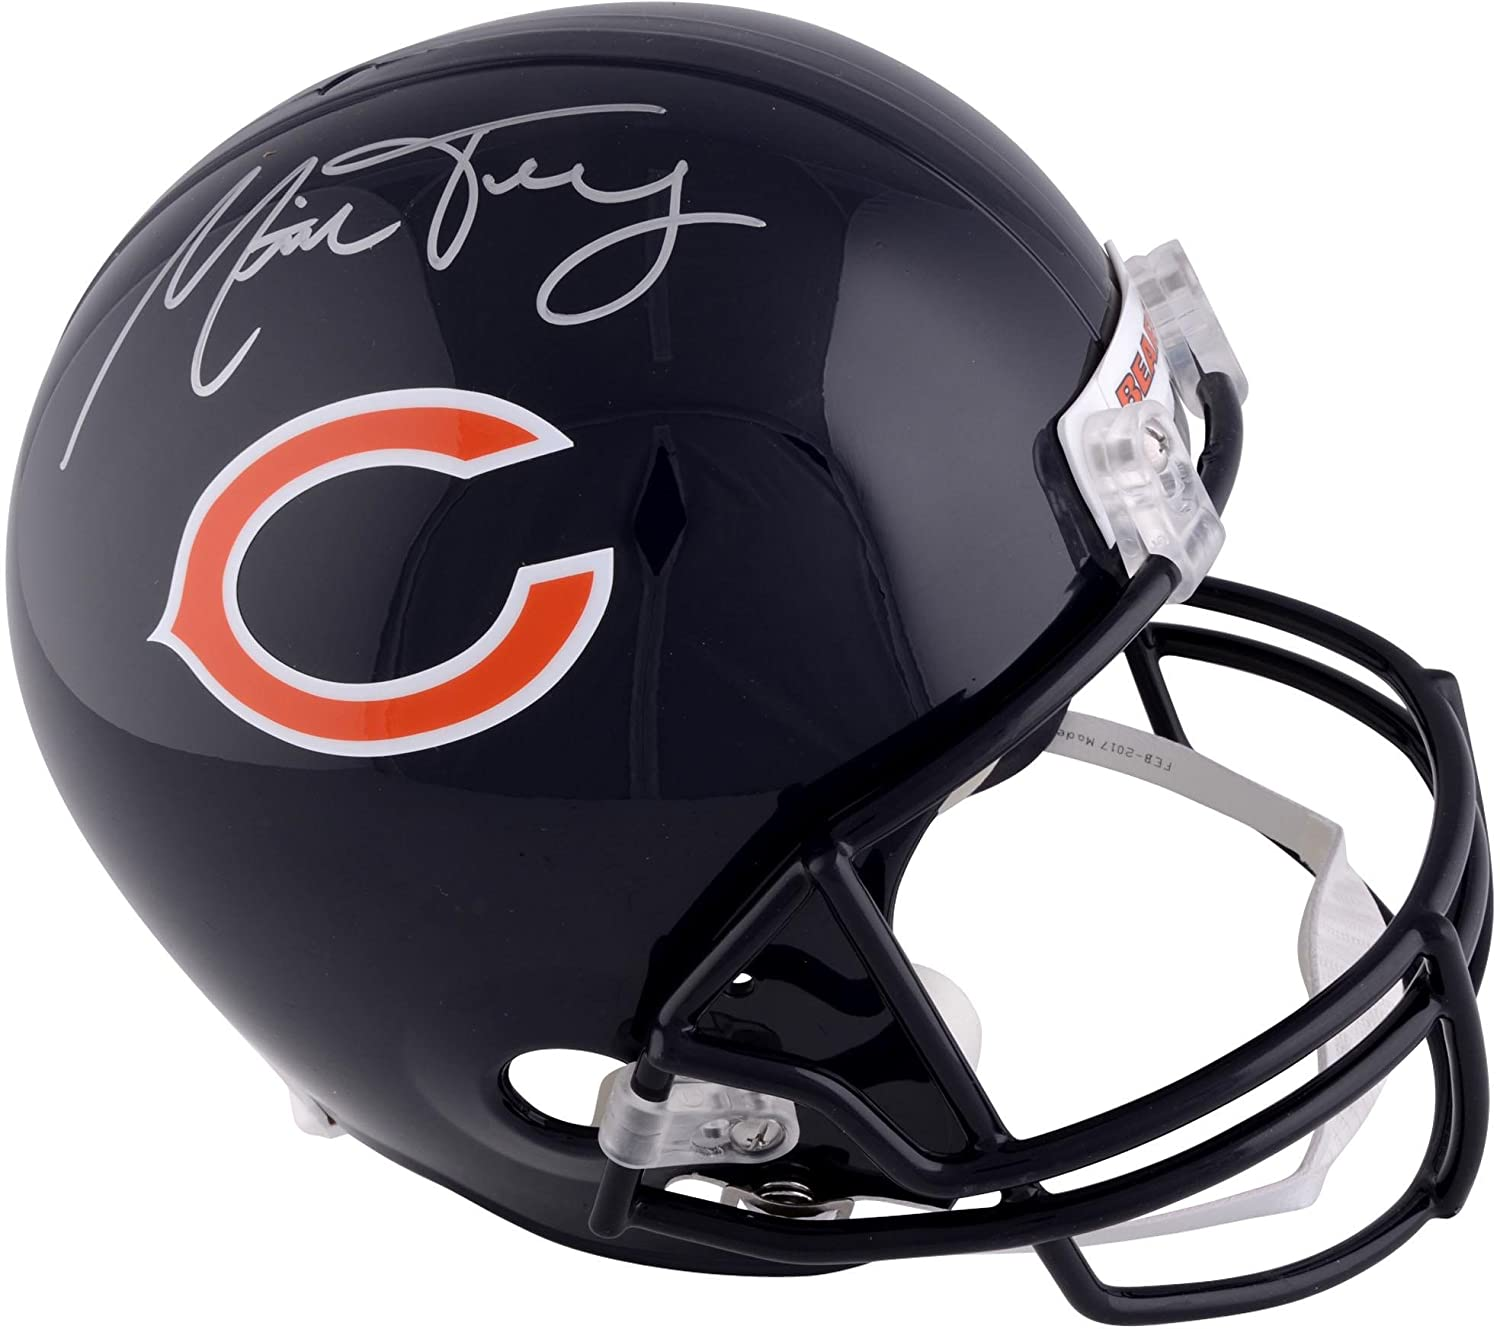 Mitchell Trubisky Chicago Bears Autographed Riddell Replica Helmet - Fanatics Authentic Certified - Autographed NFL Helmets